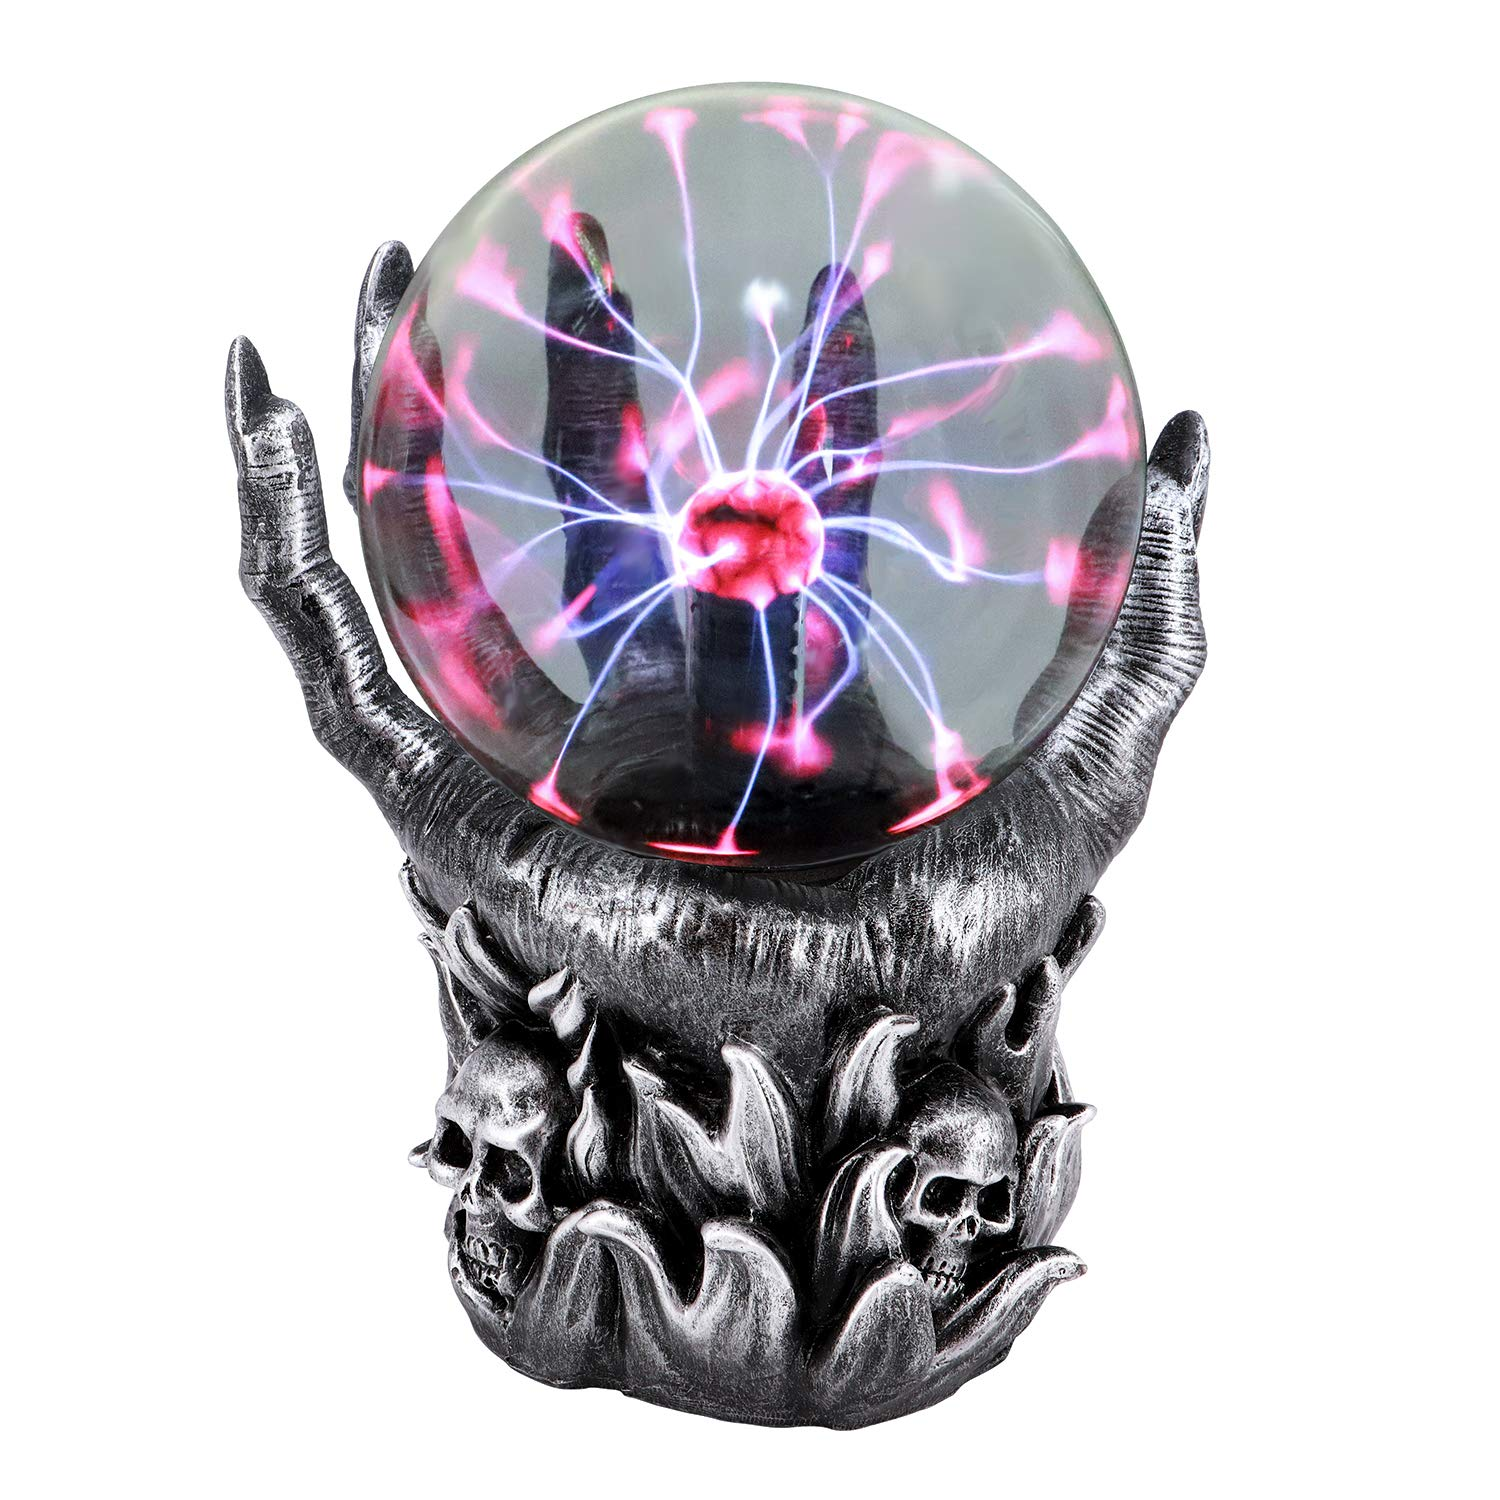 QTKJ Resin Plasma Ball, 2 Small Skulls Head Claw Touch Sensitive Electric Globe Static Light for Home and Party, Holiday Decorations Gifts